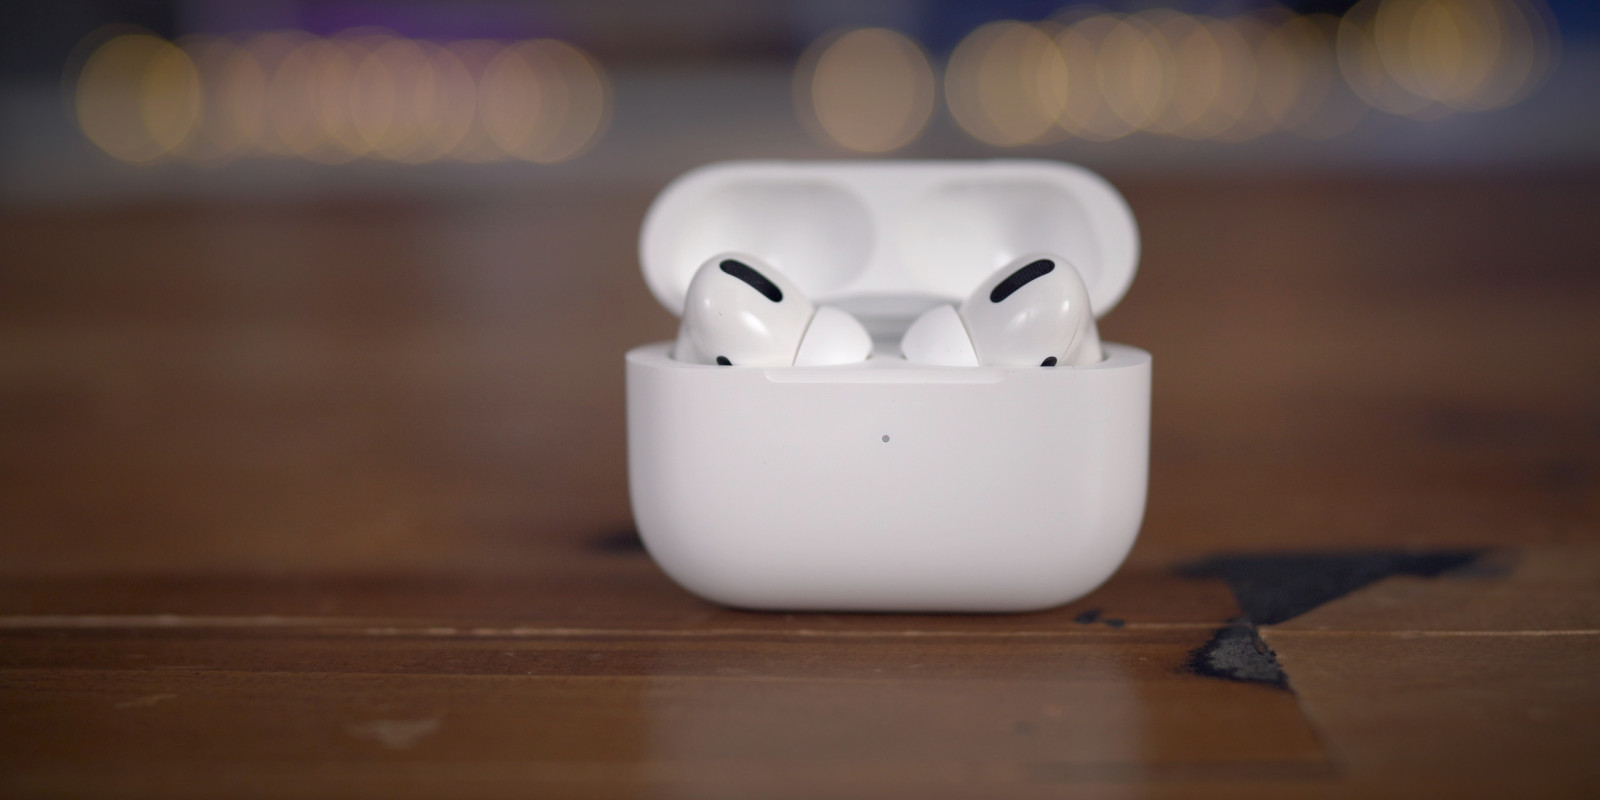 AirPods Pro return to Amazon all-time low price at $235